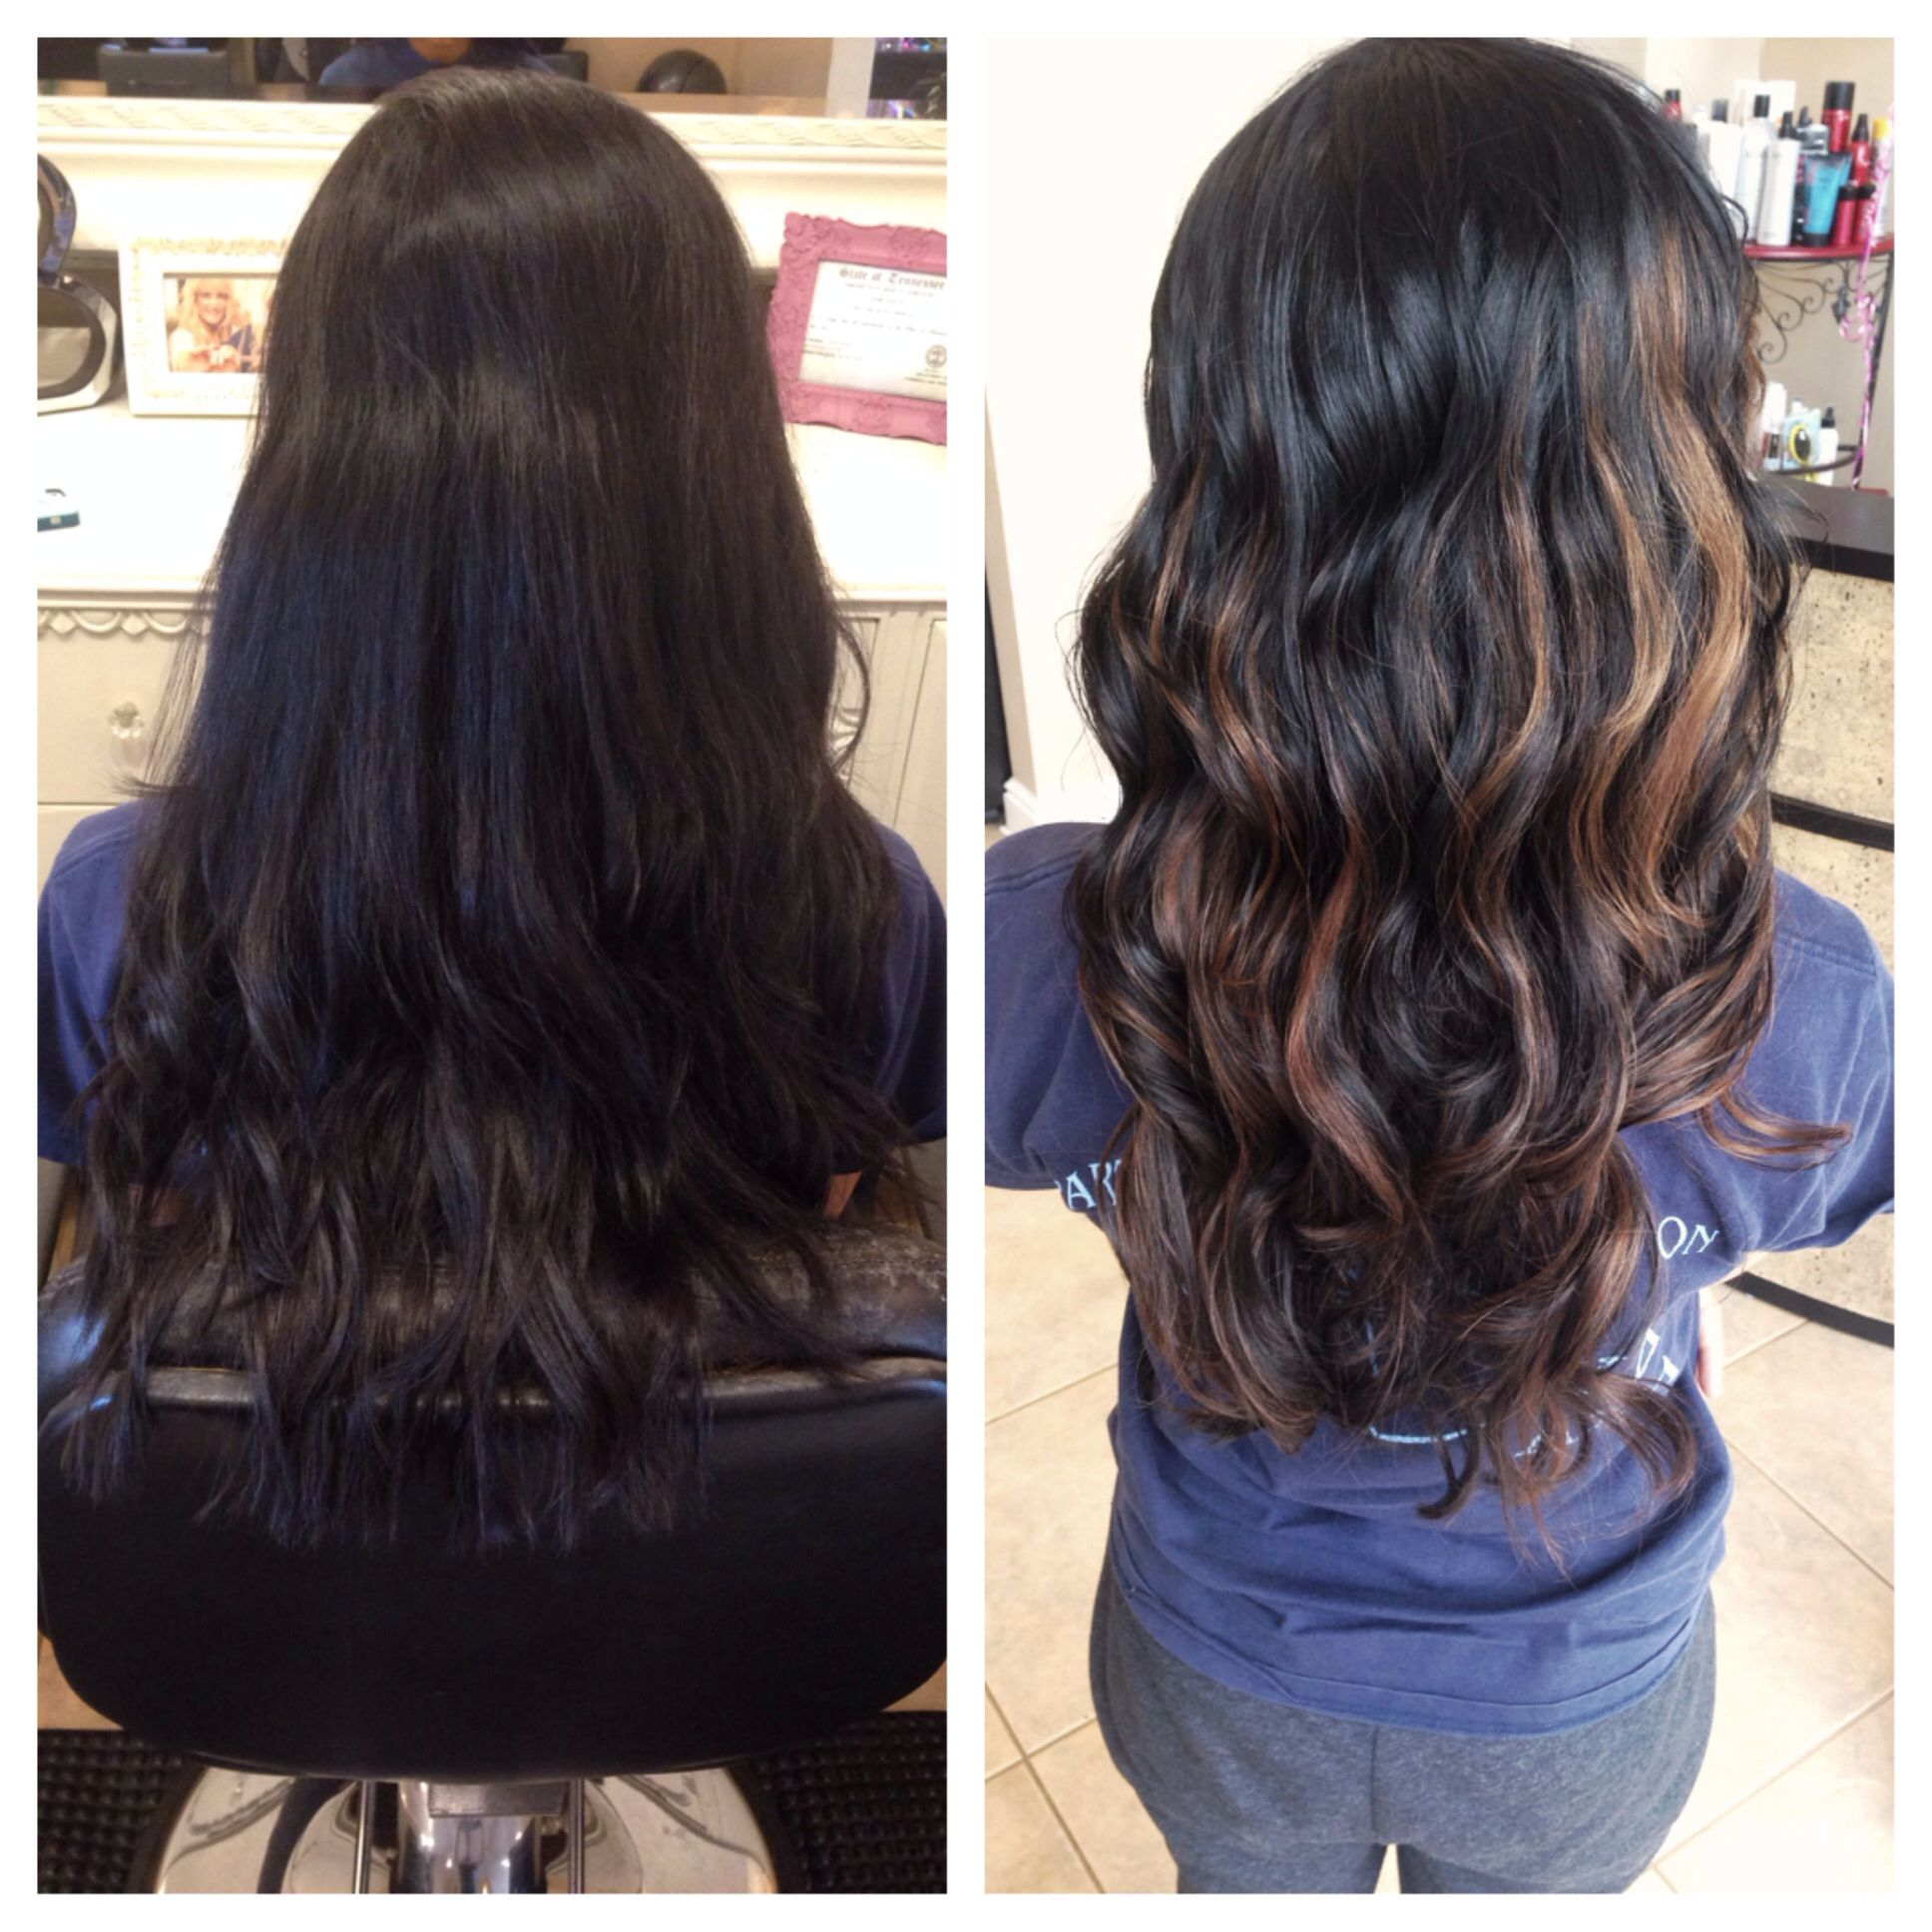 Before After Balayage Highlights Indian Hair Perfect Contrasting Color With Black Hair Balayage Hair Blonde Long Balayage Highlights Balayage Hair Dark Blonde